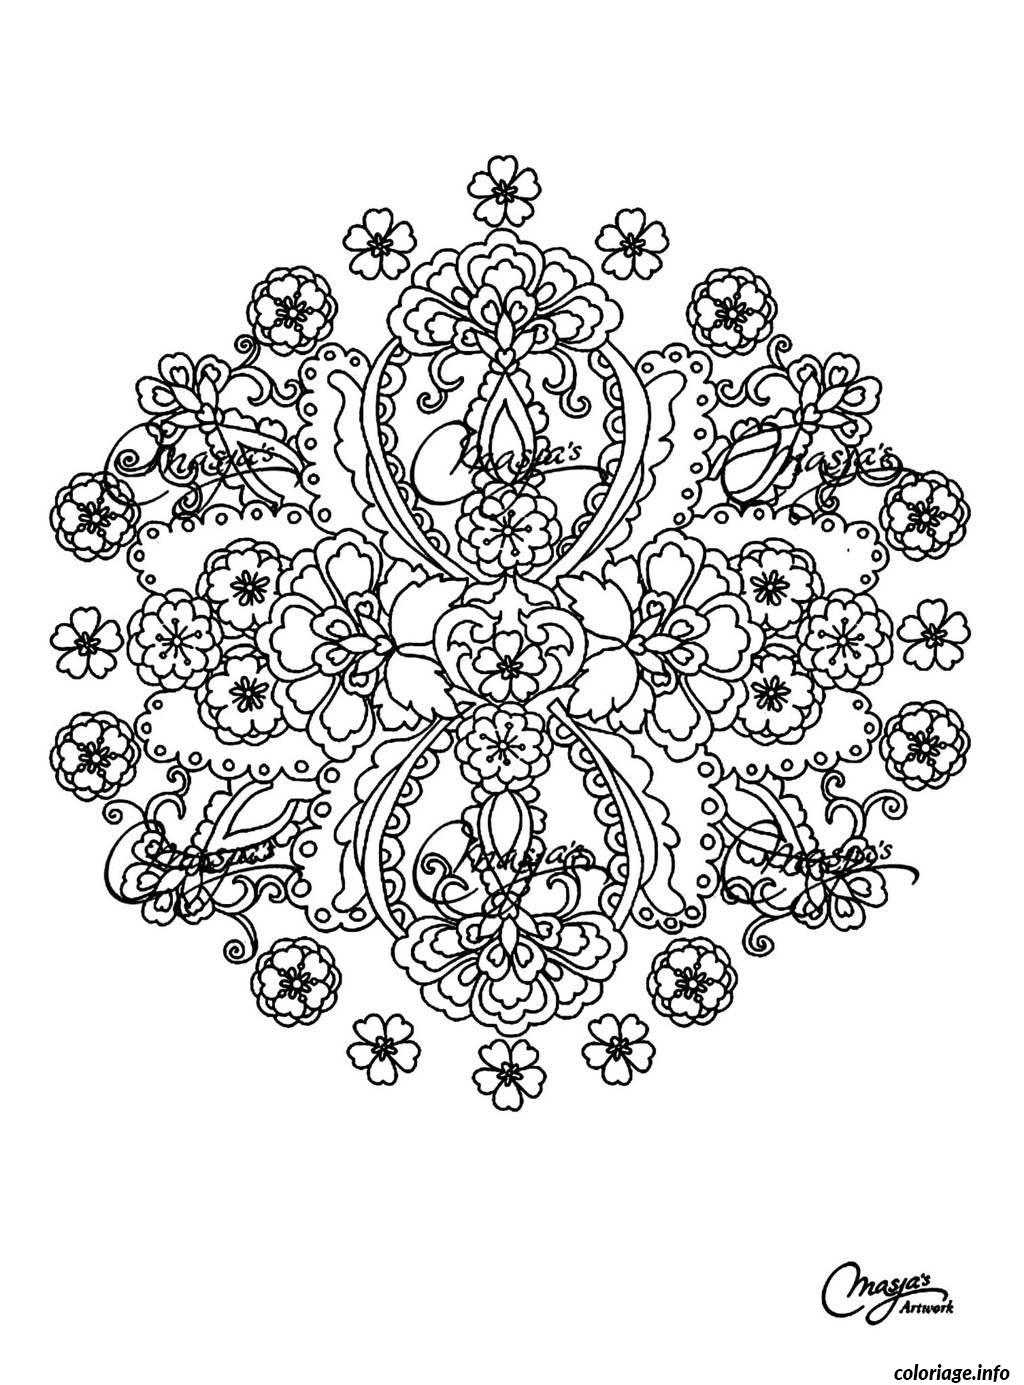 Coloriage Coloring Free Mandala Difficult Adult To Print 15  Dessin à Imprimer